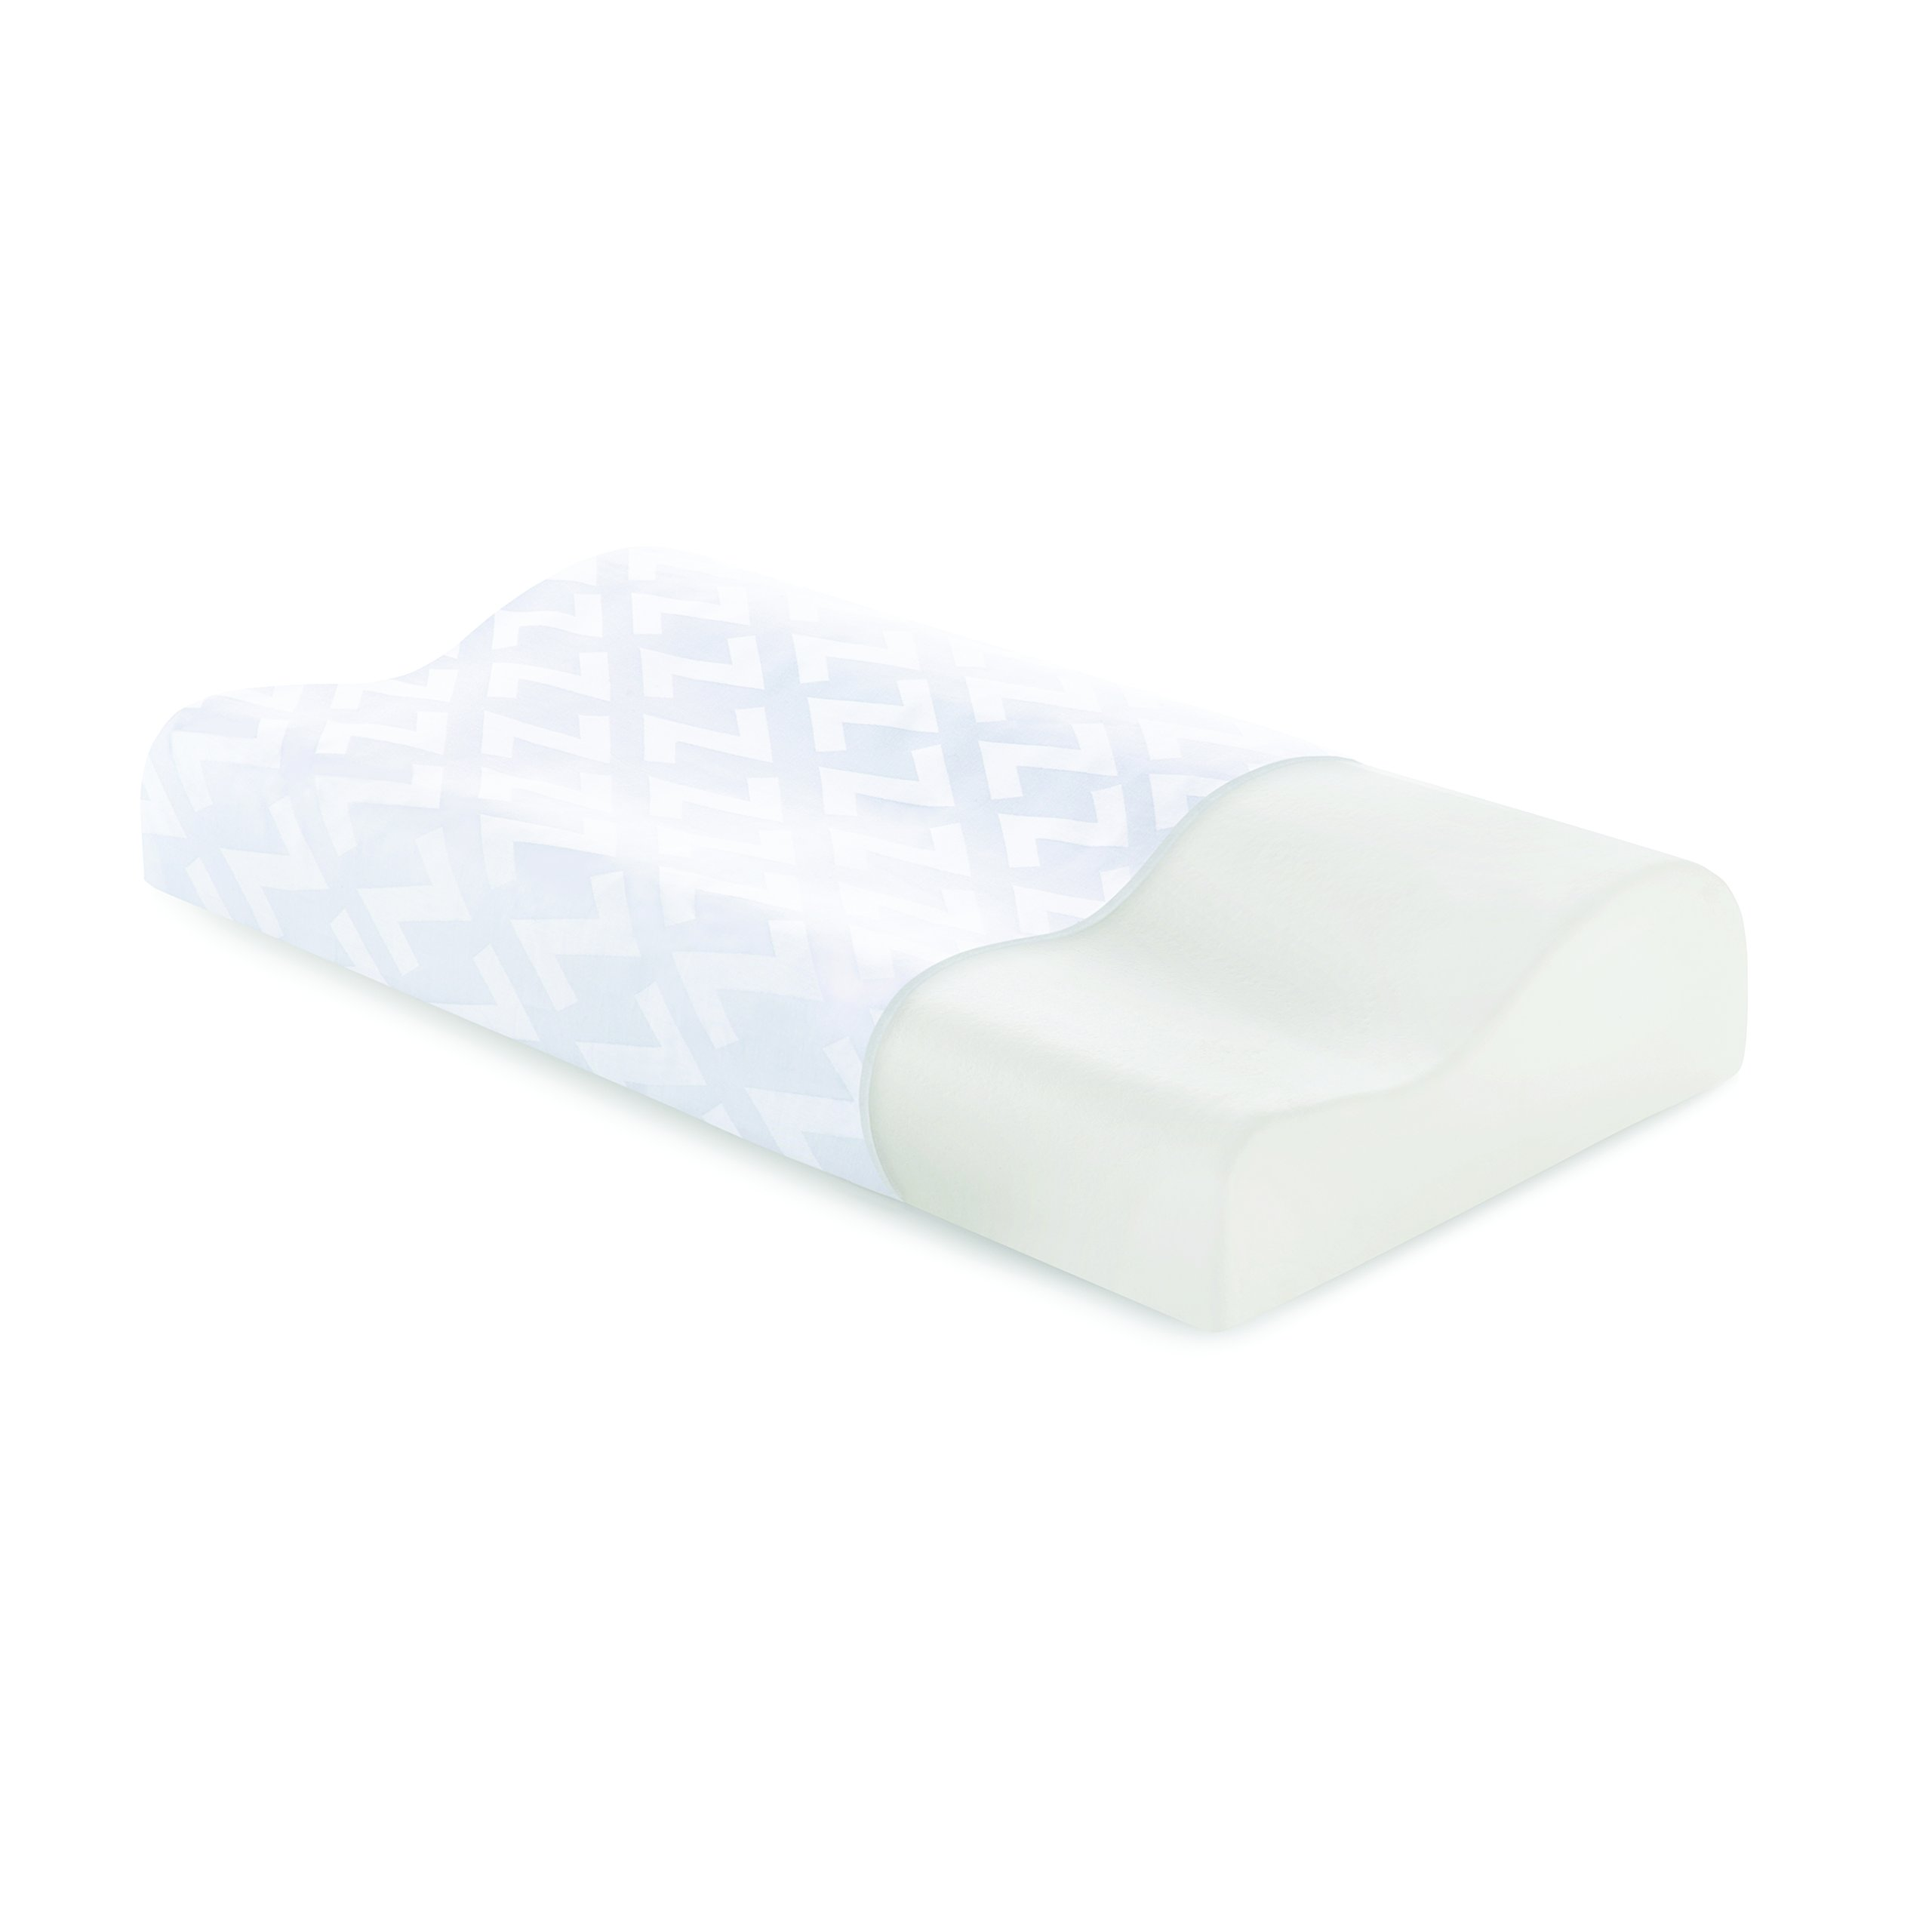 Z Memory Foam Contour Pillow - Removable Tencel Cover - Queen